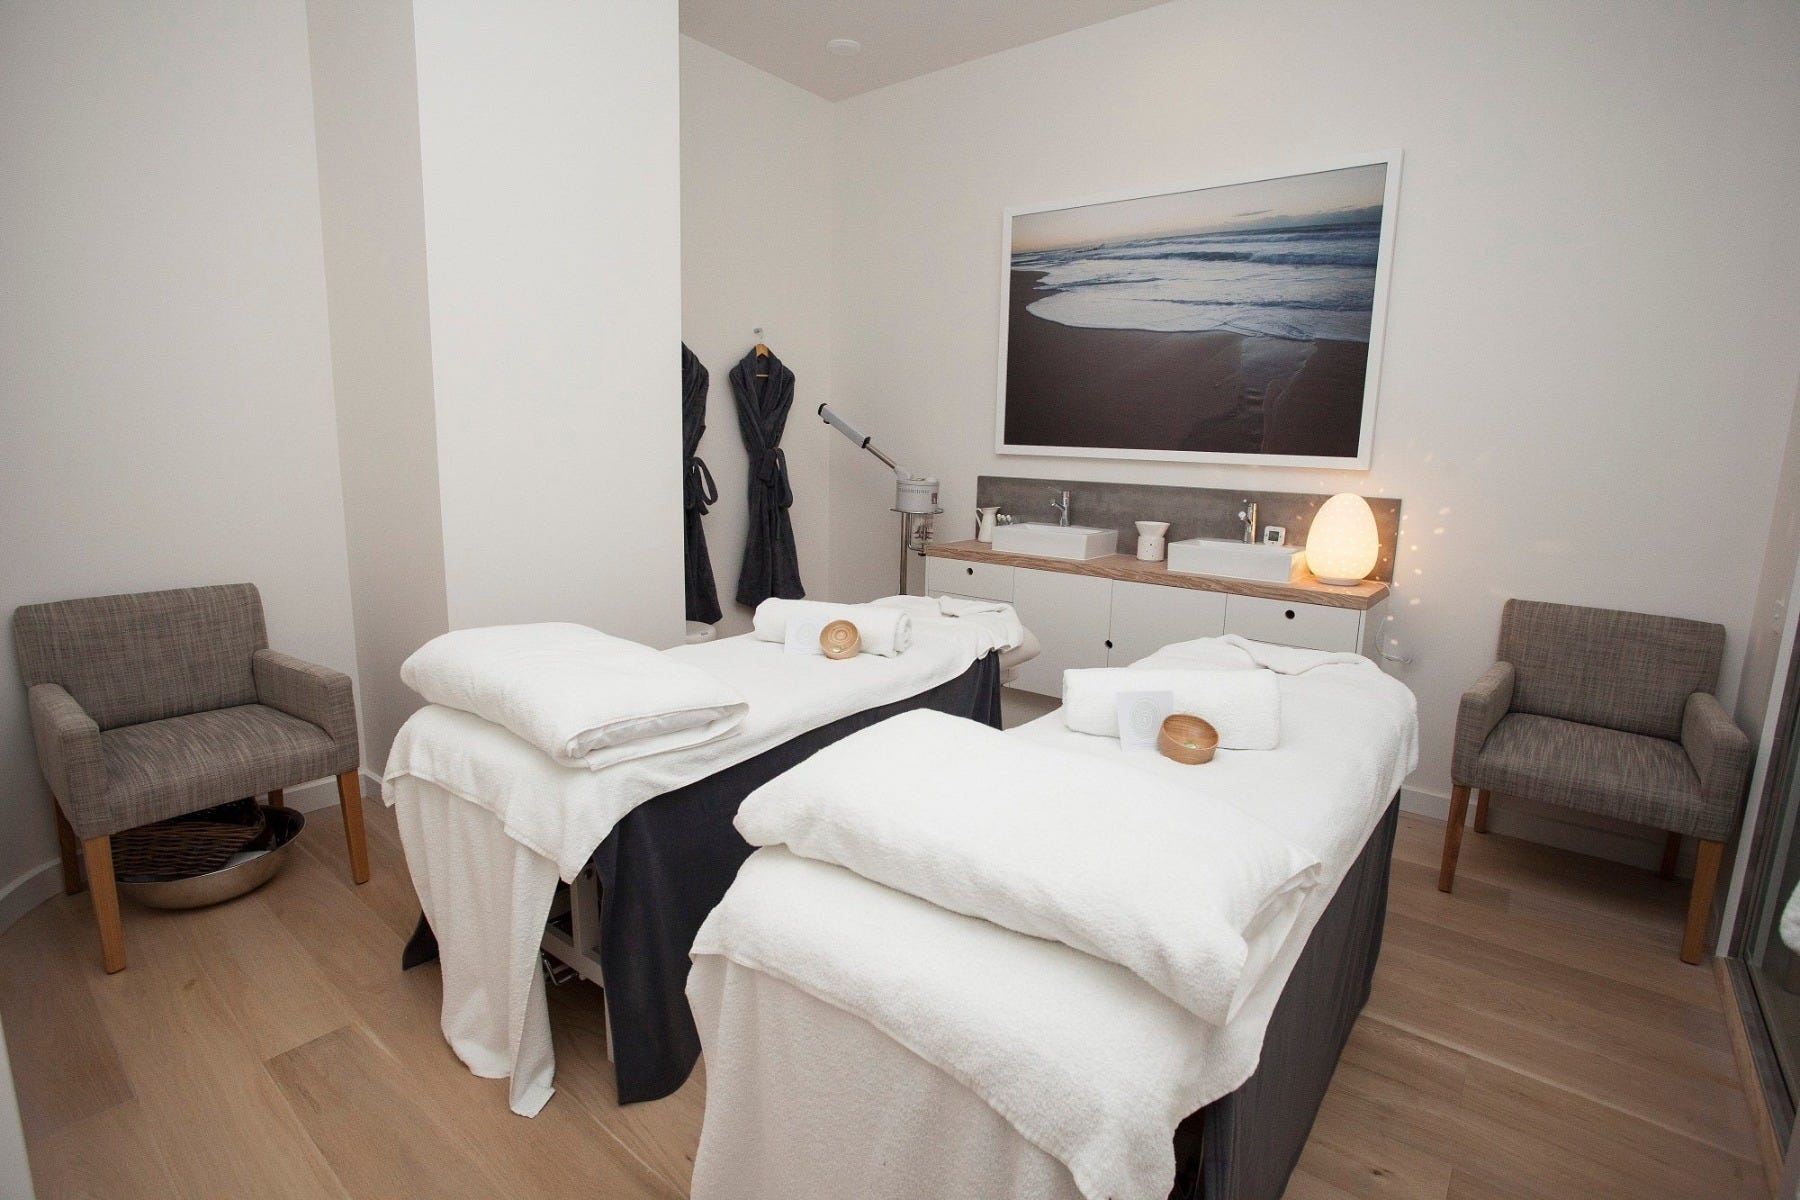 Day Spa Eastland Couples Treatment Room